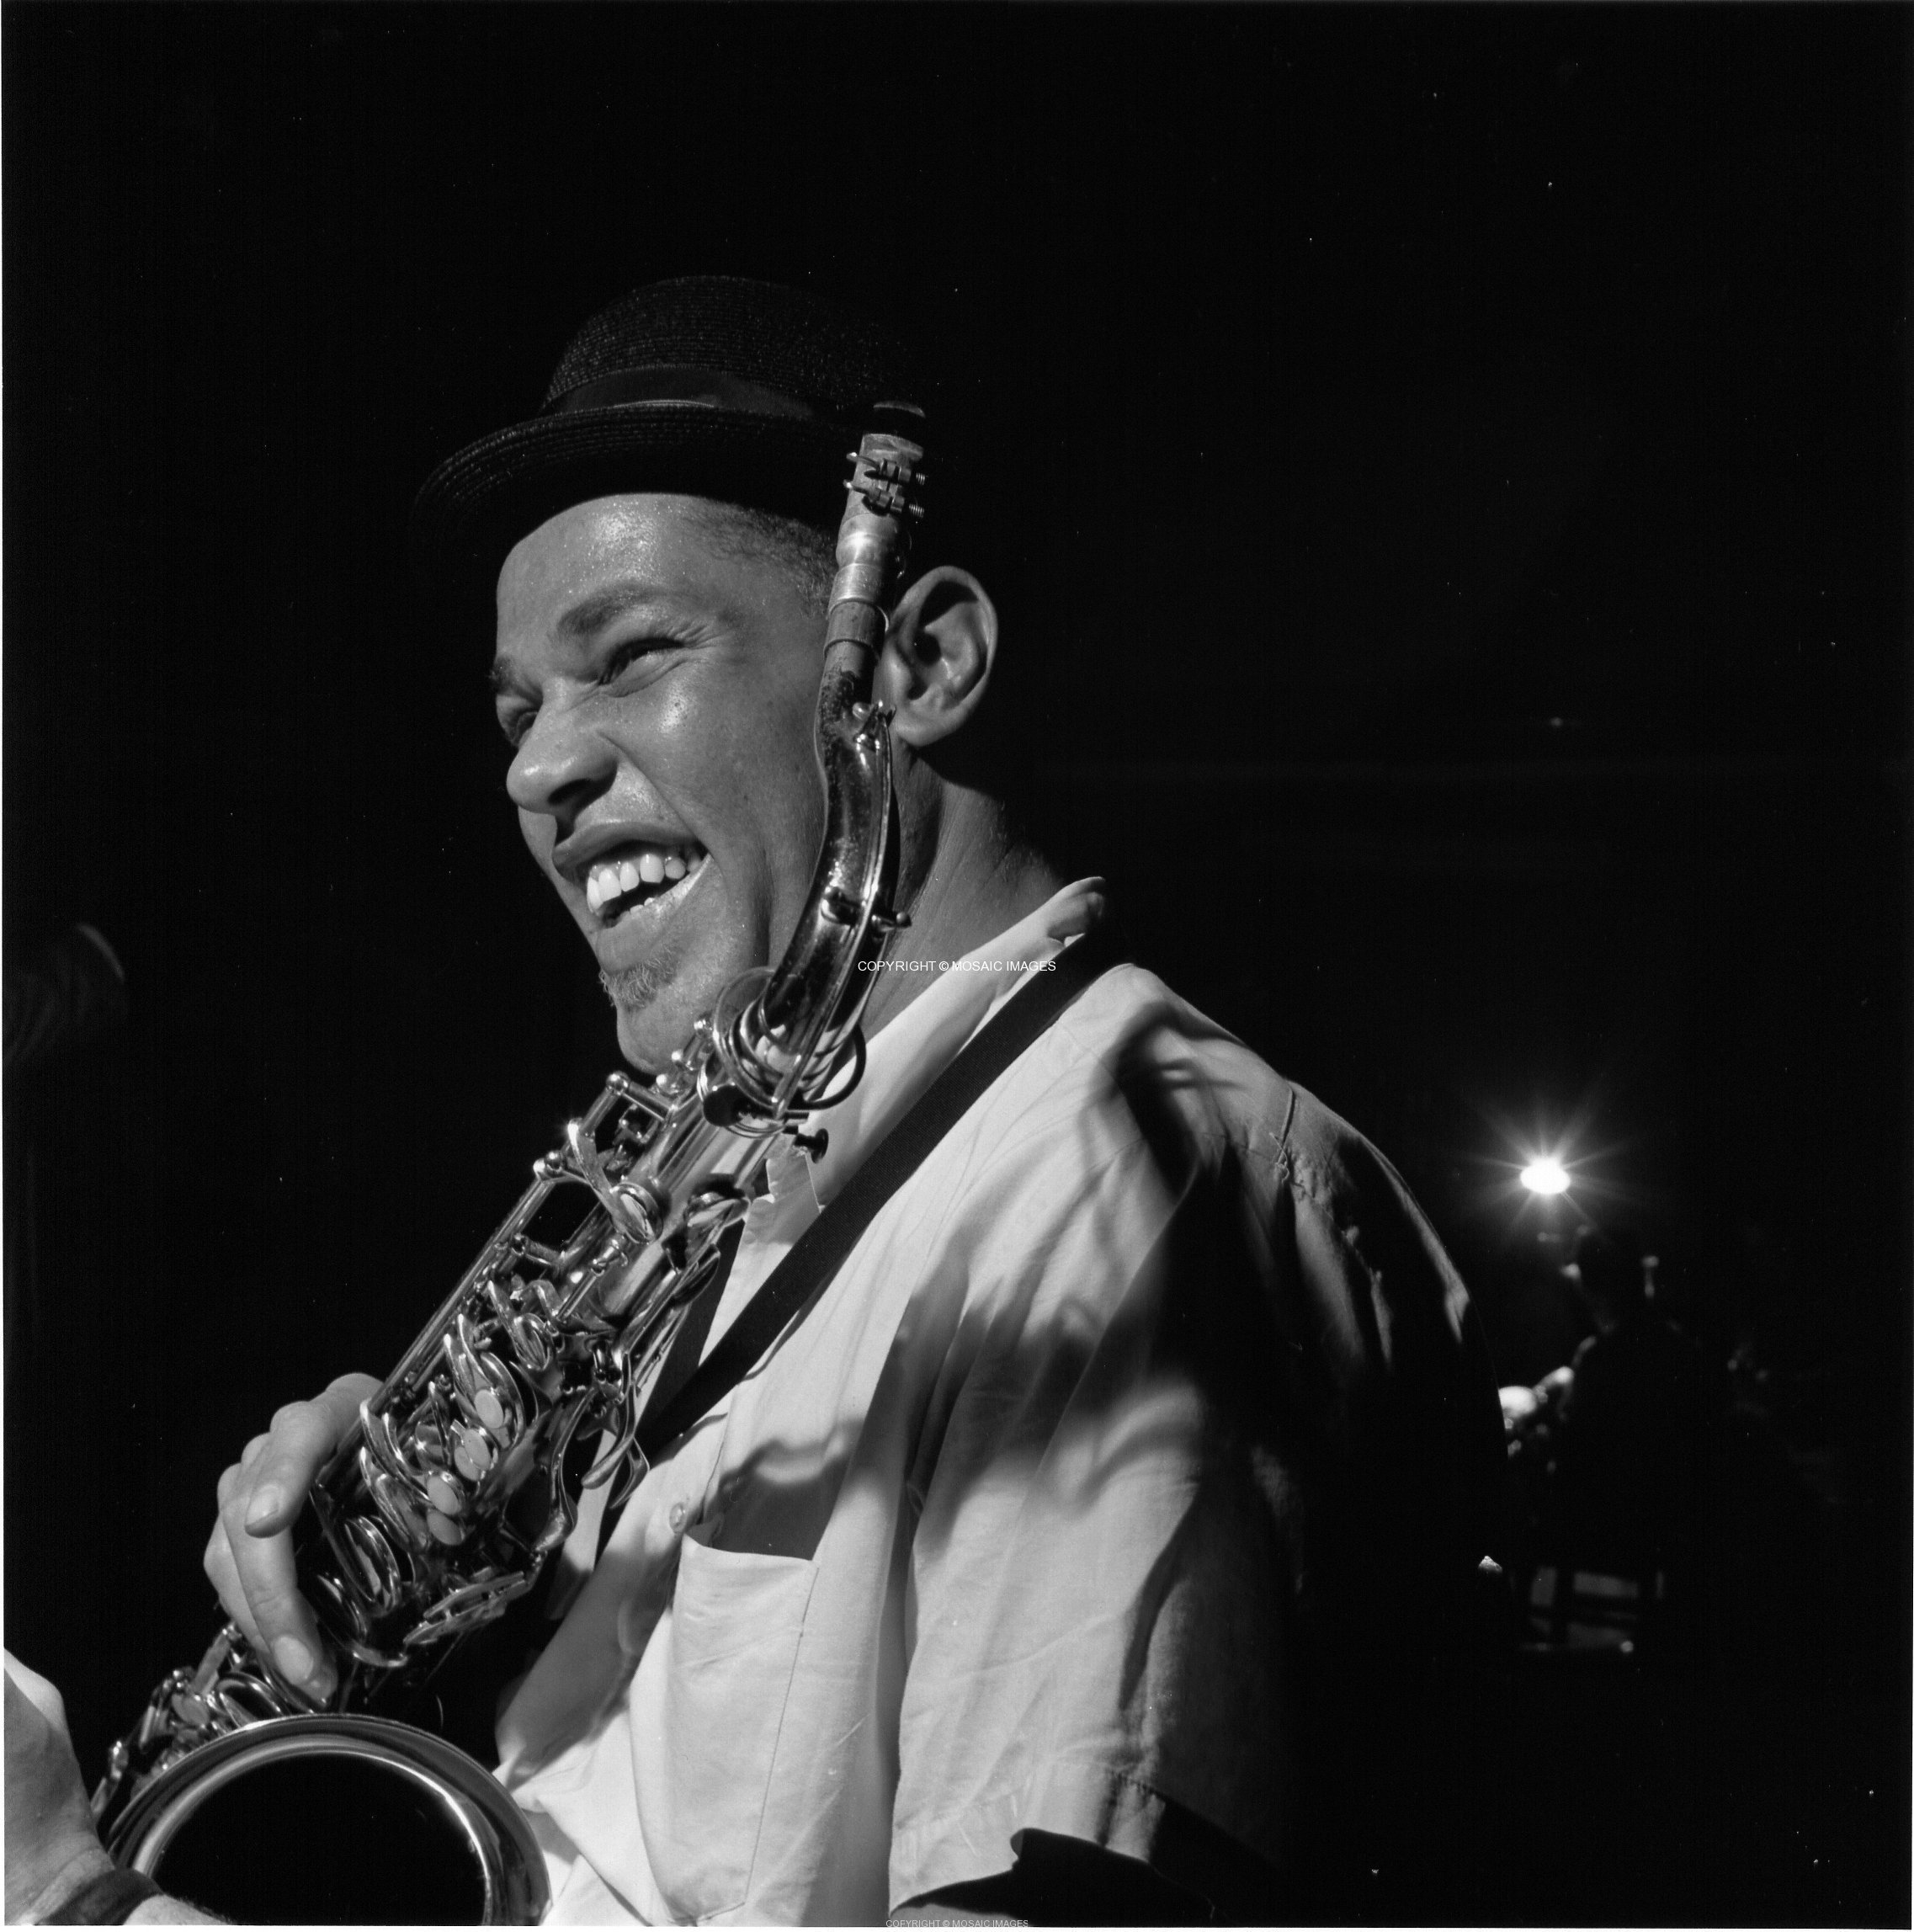 Dexter Gordon Prominently fabulous high quality images of Dexter Gordon